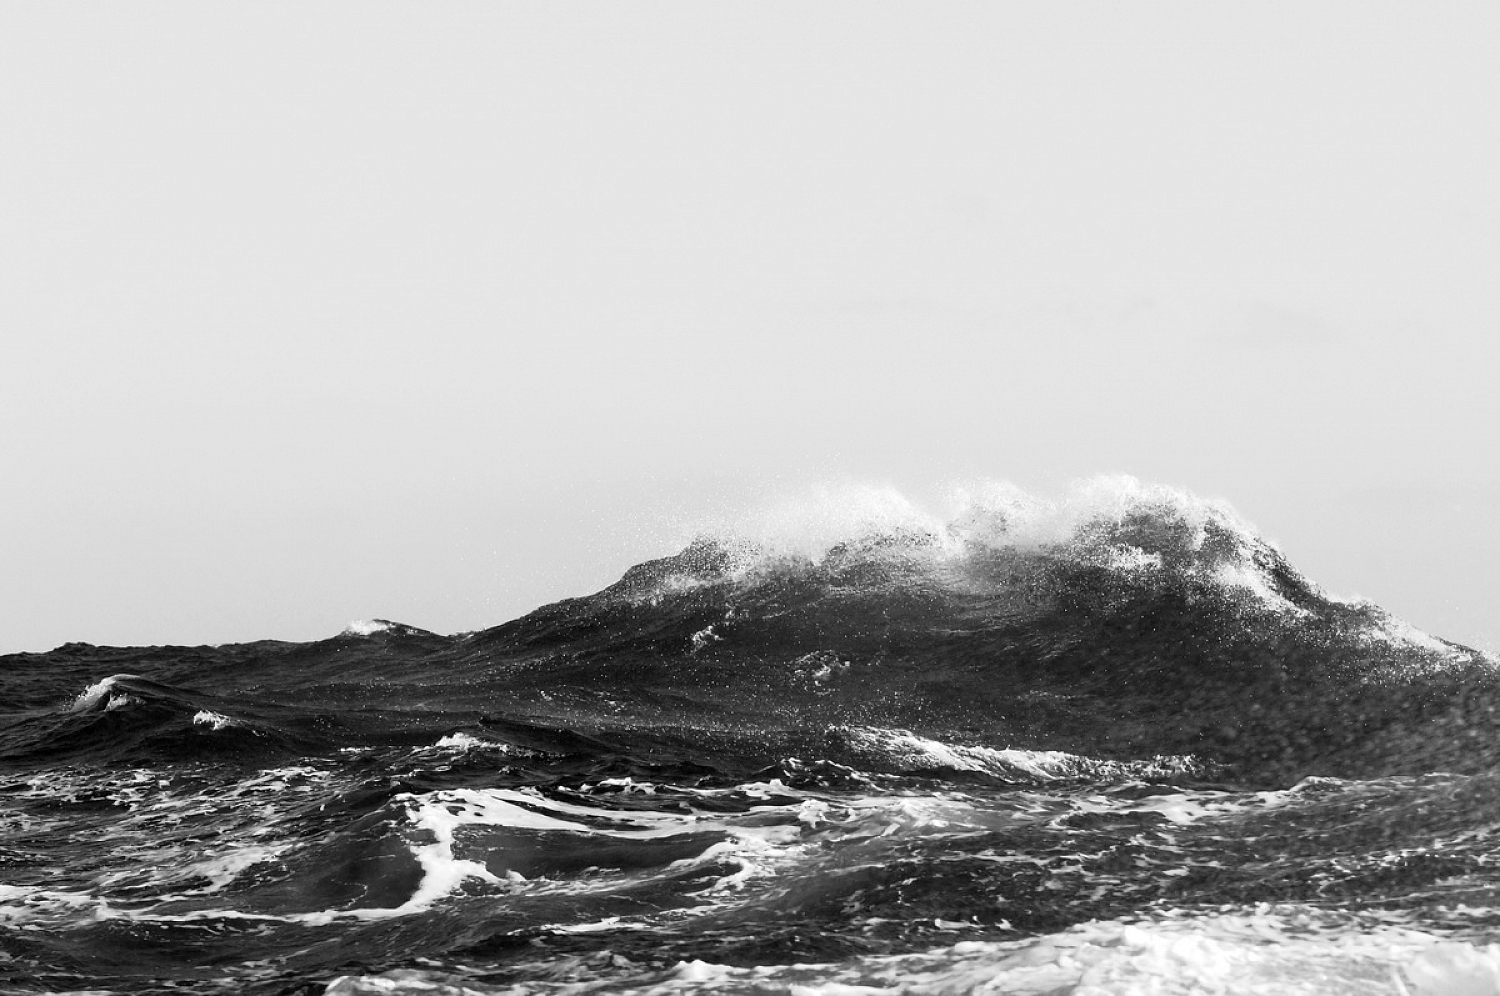 Dolph Kessler - Photobook: The Wave, crossing the Atlantic